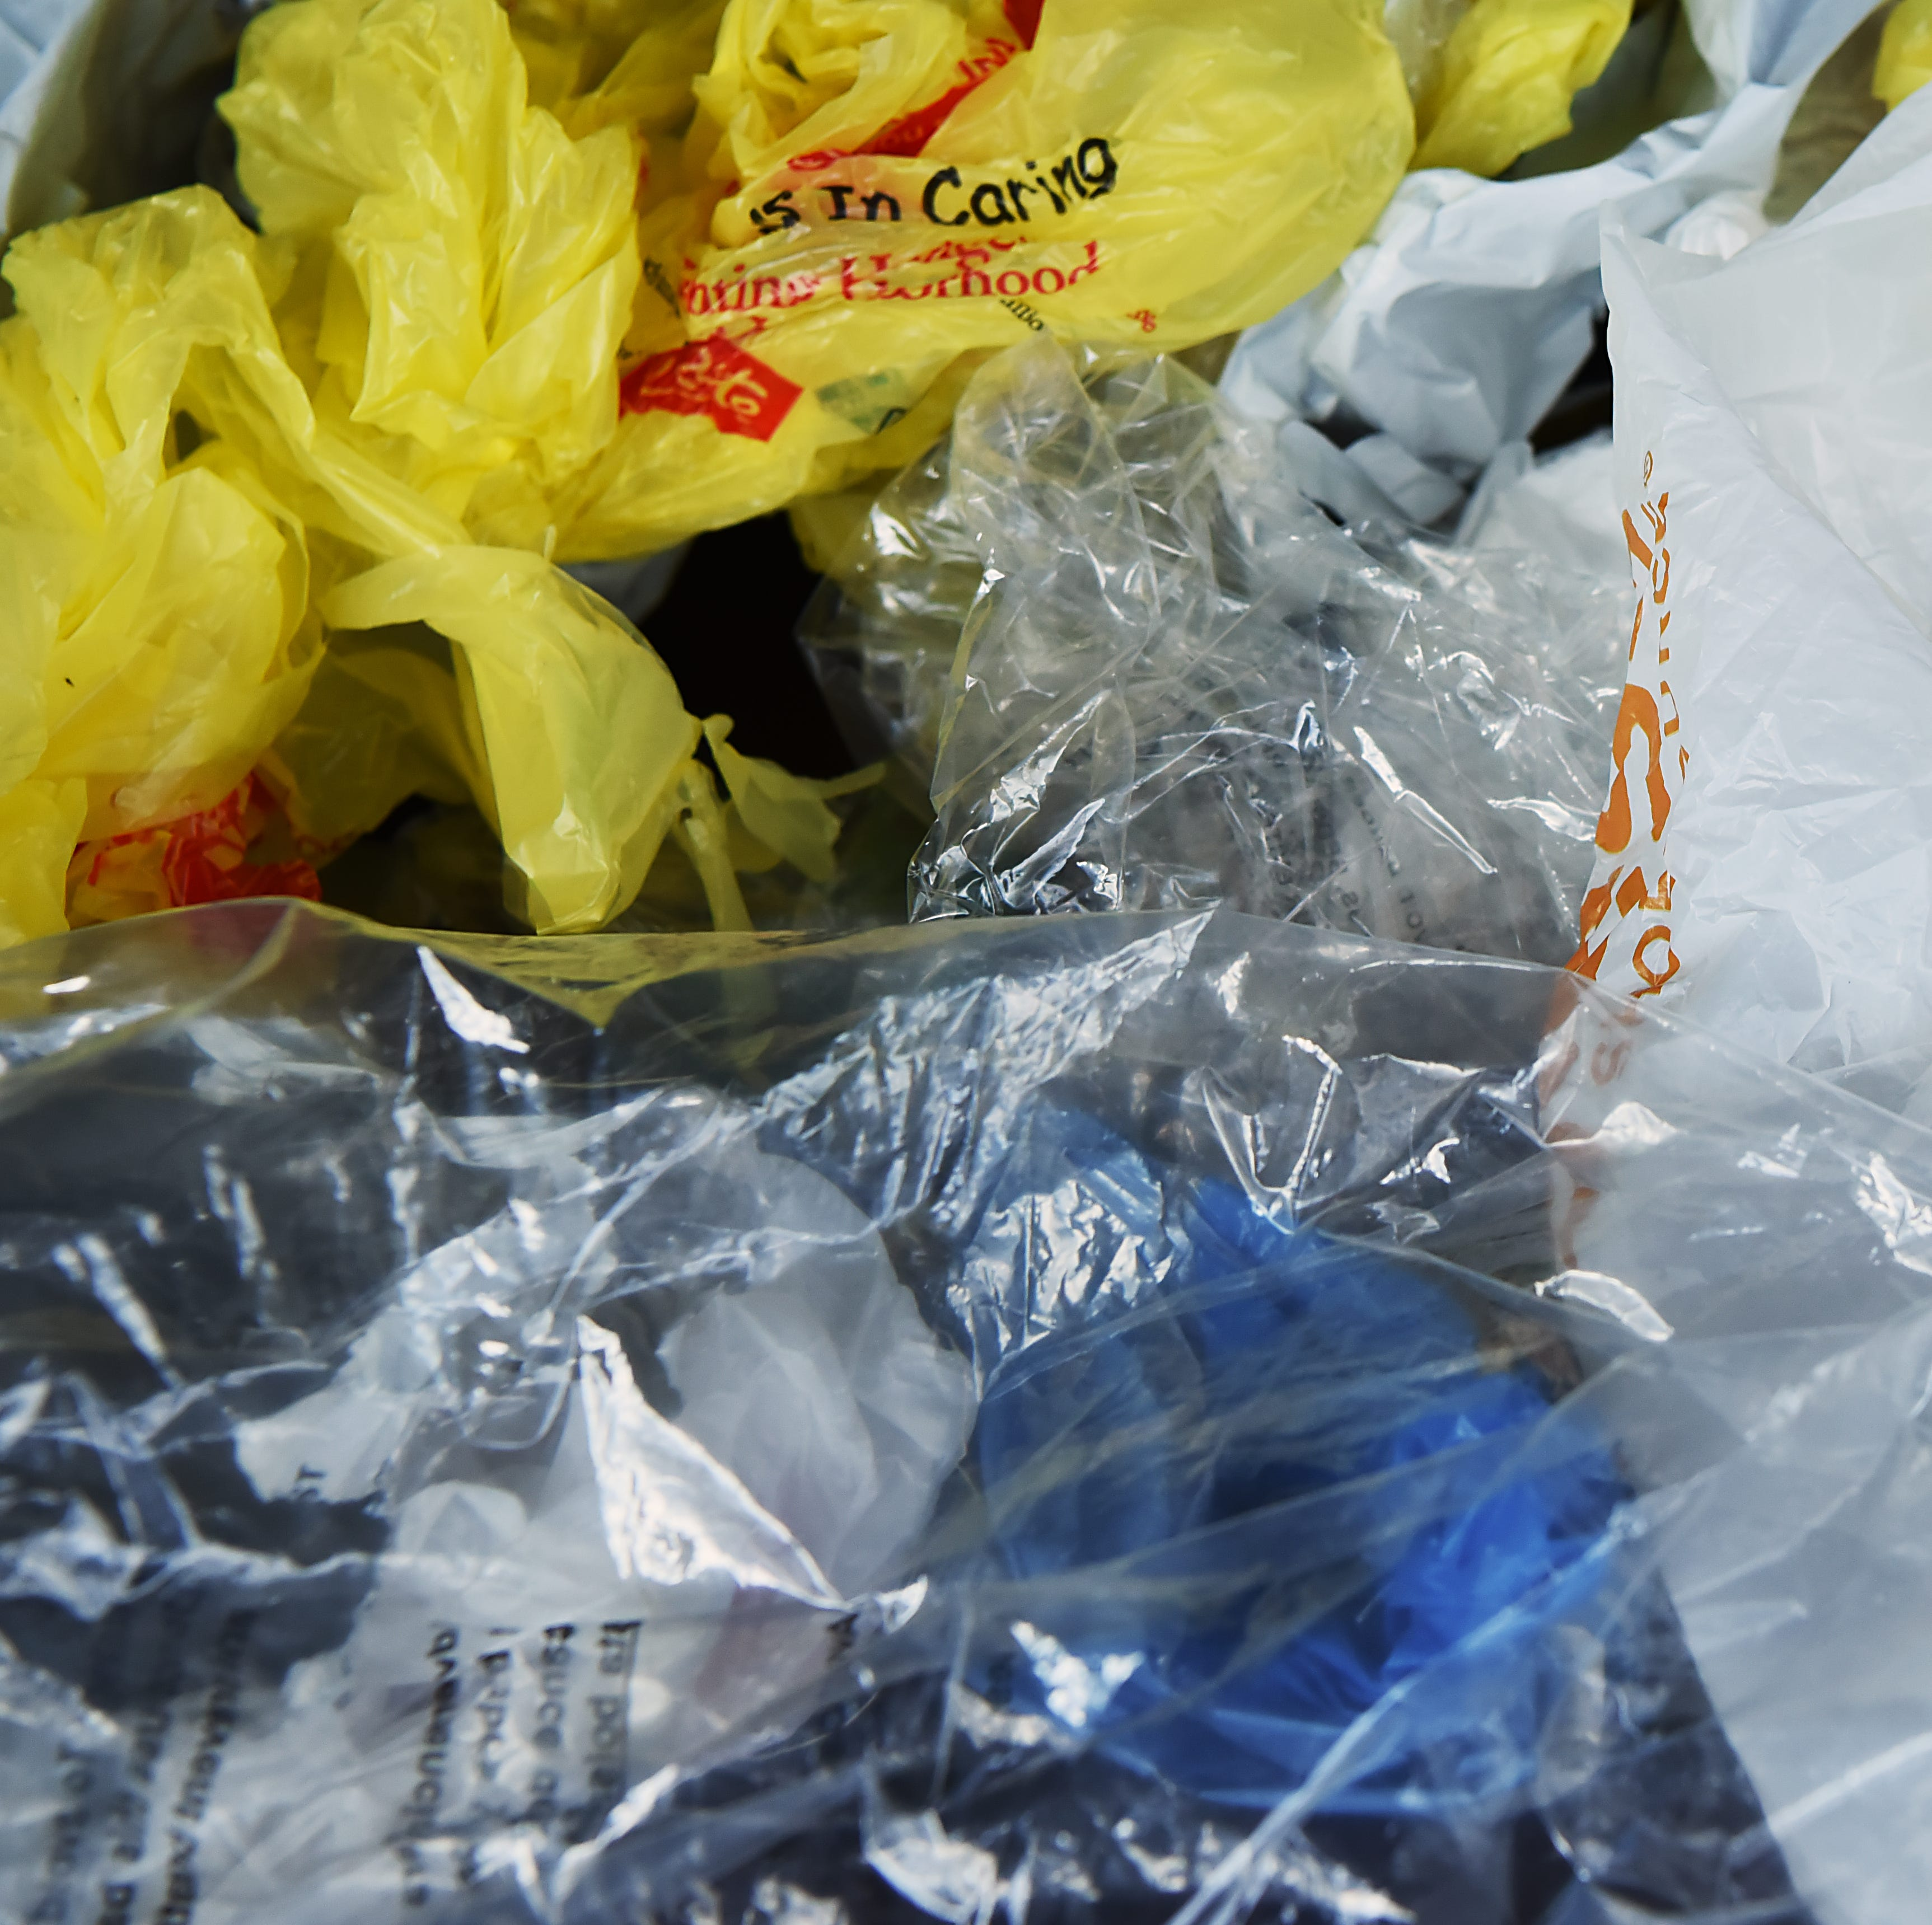 New Jersey is pushing one of the strictest plastics bans in the nation. But is it enough?